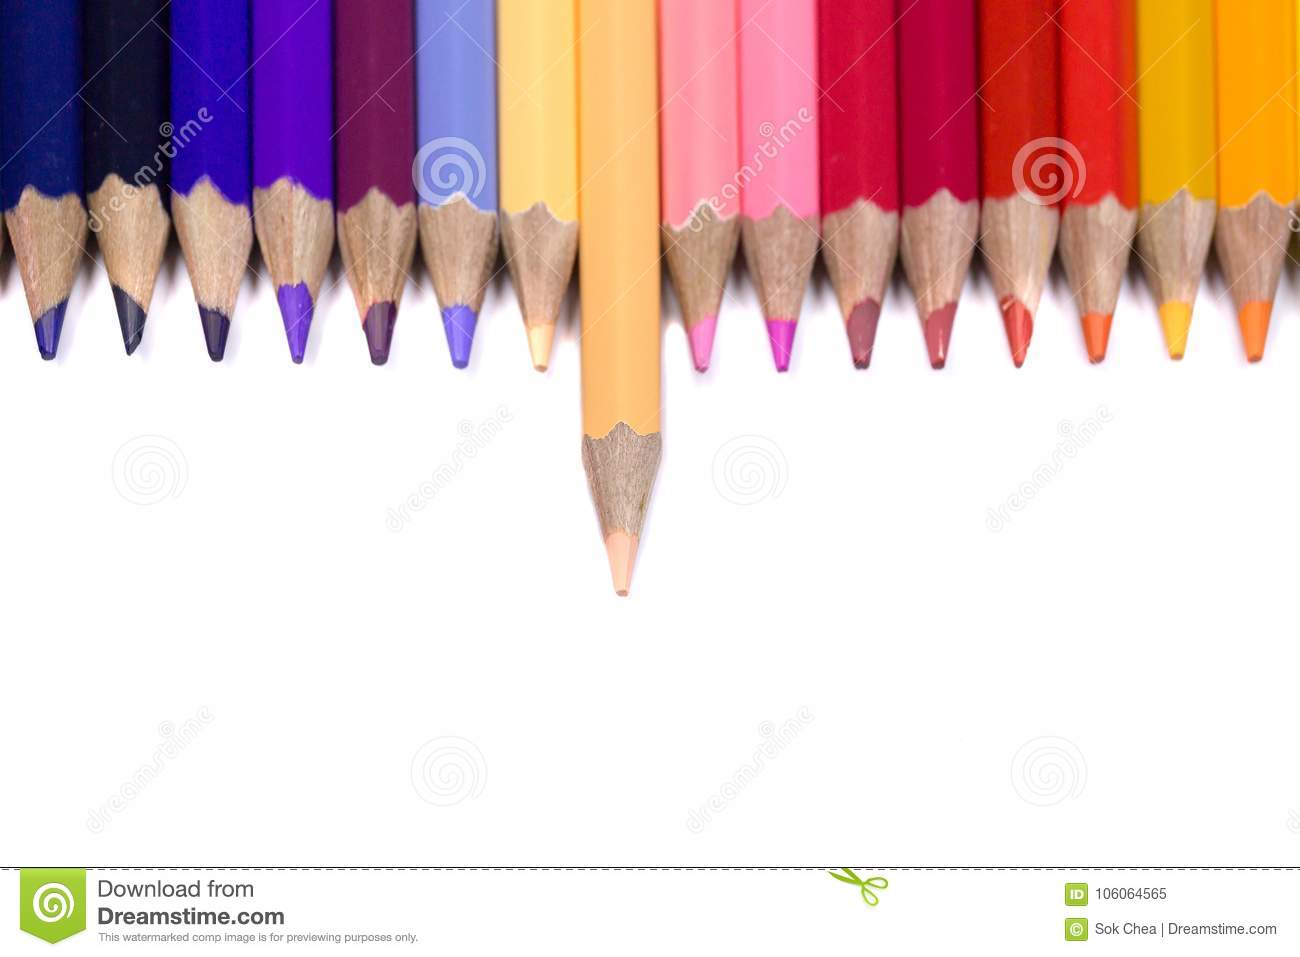 Odd One Out Color Pencil Facing Down on Pure White Background